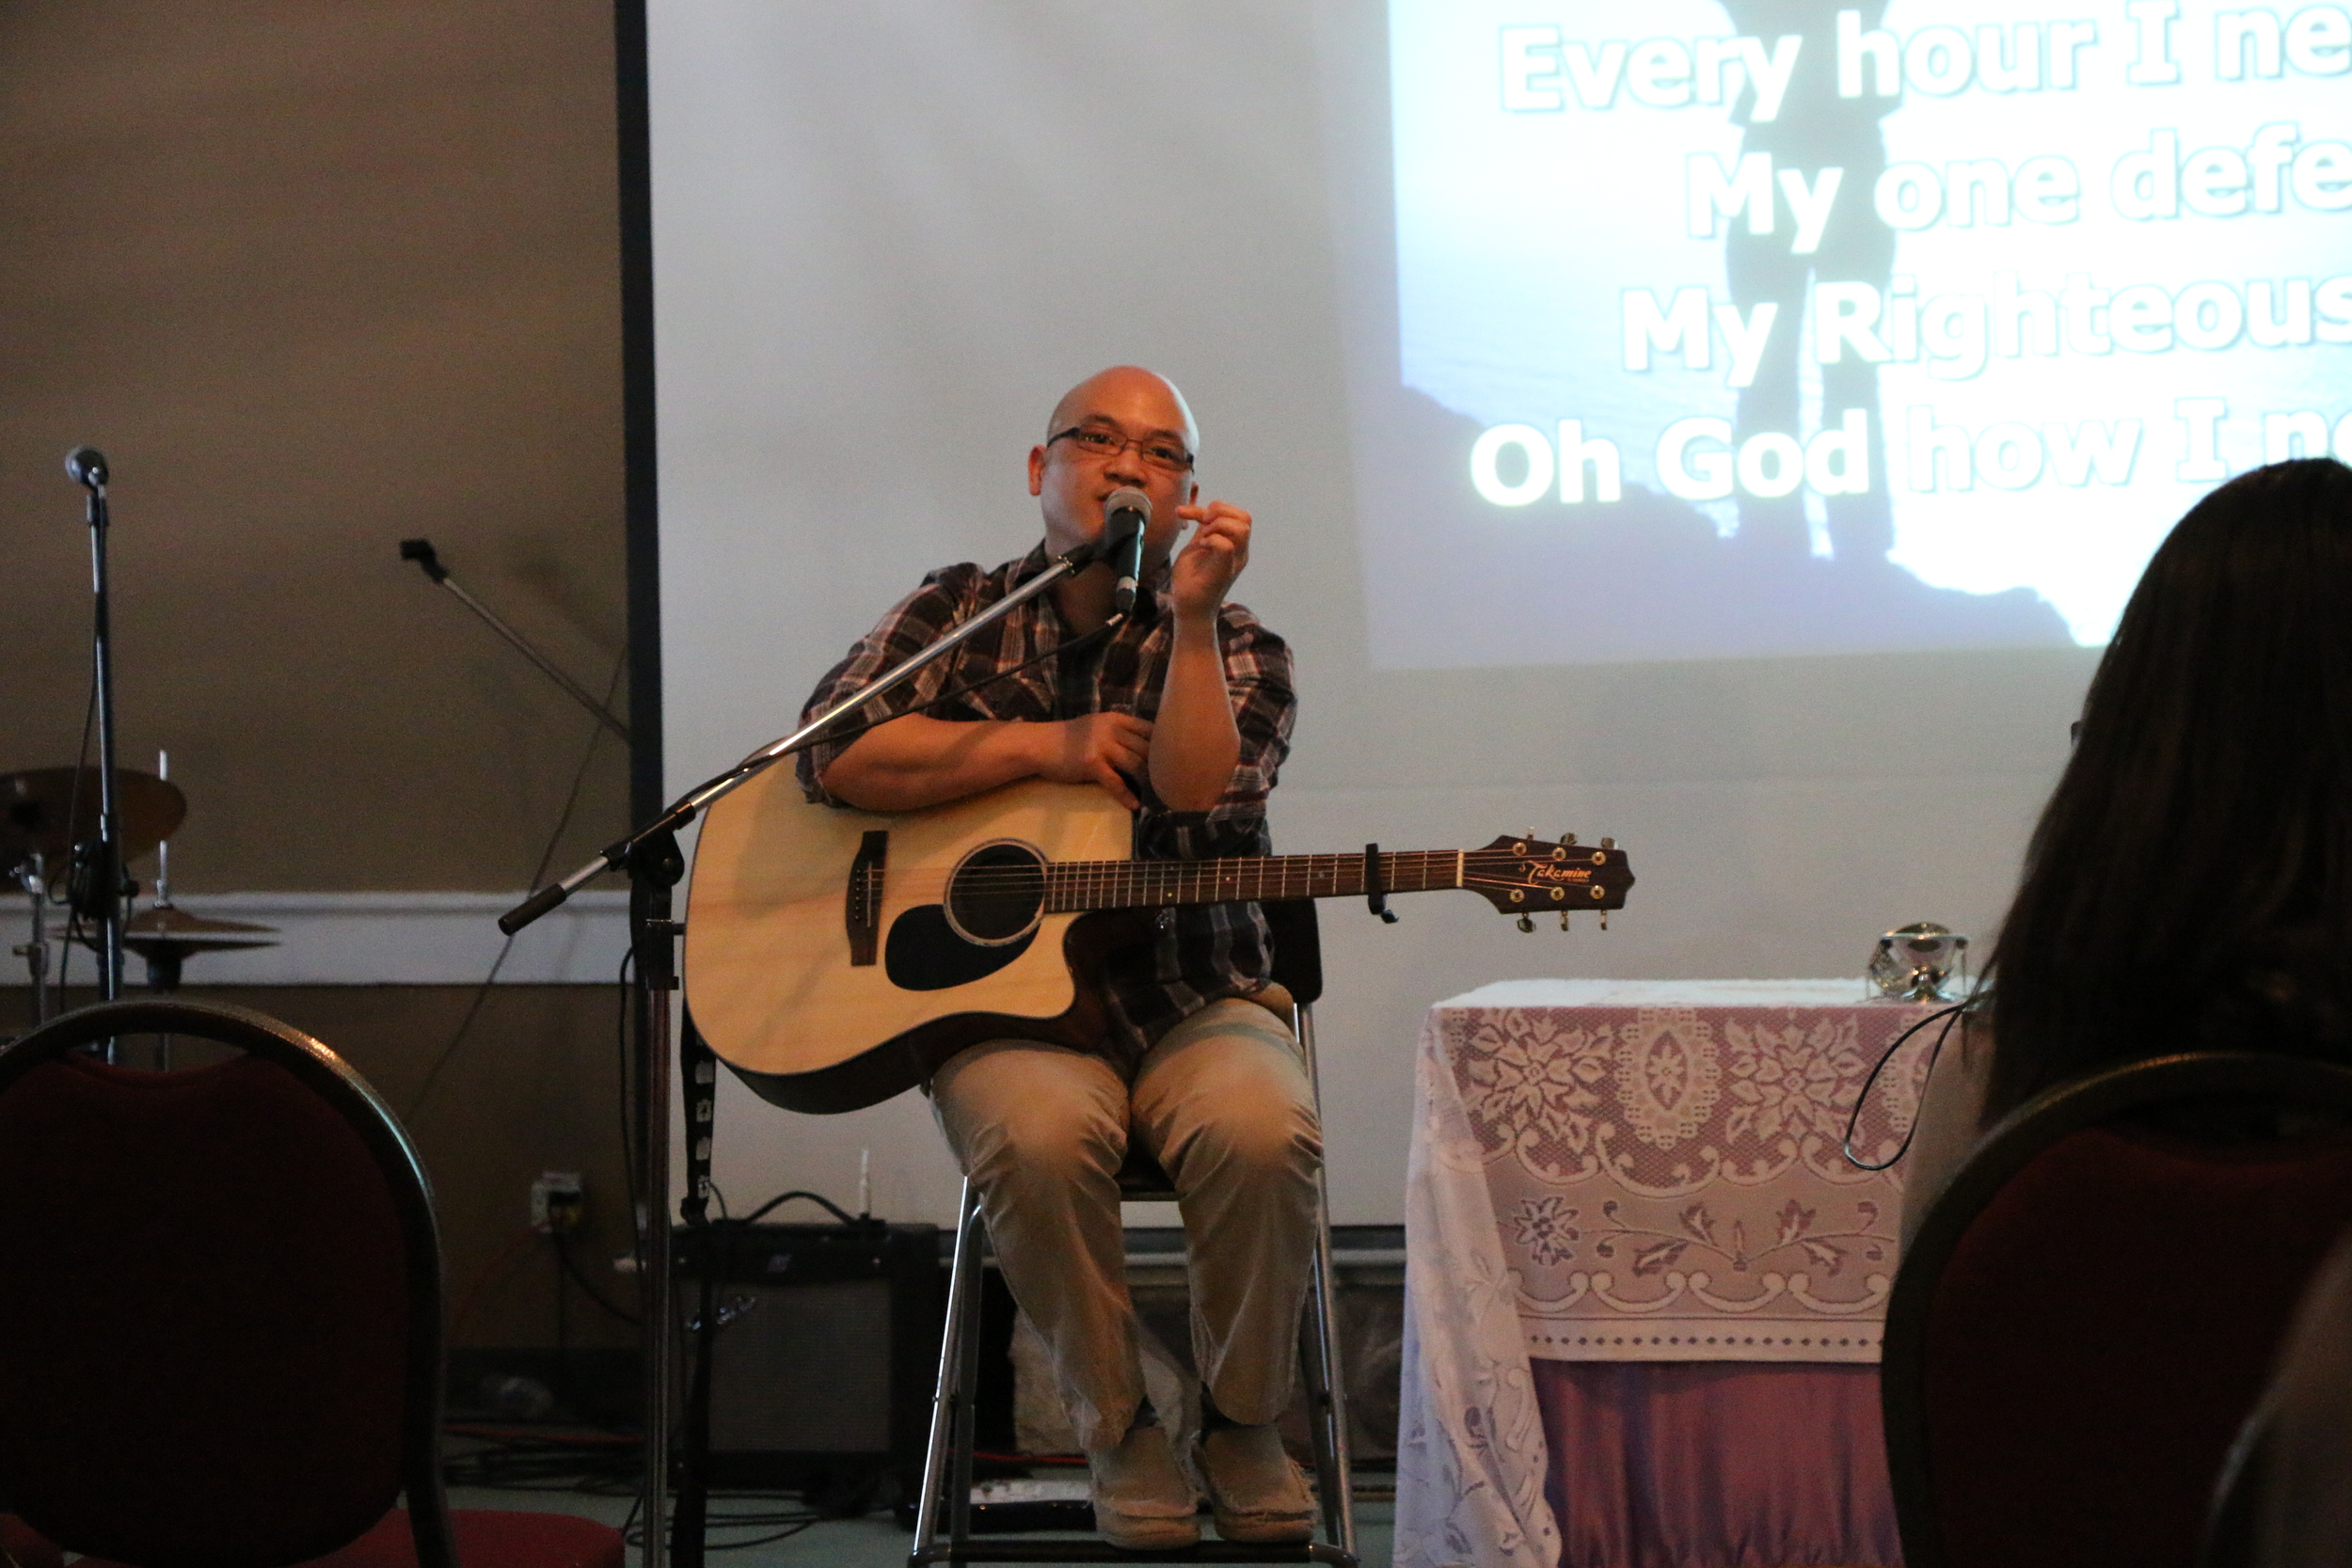 Read more about Steve on his website. See his latest blog post  The Futility of Worship